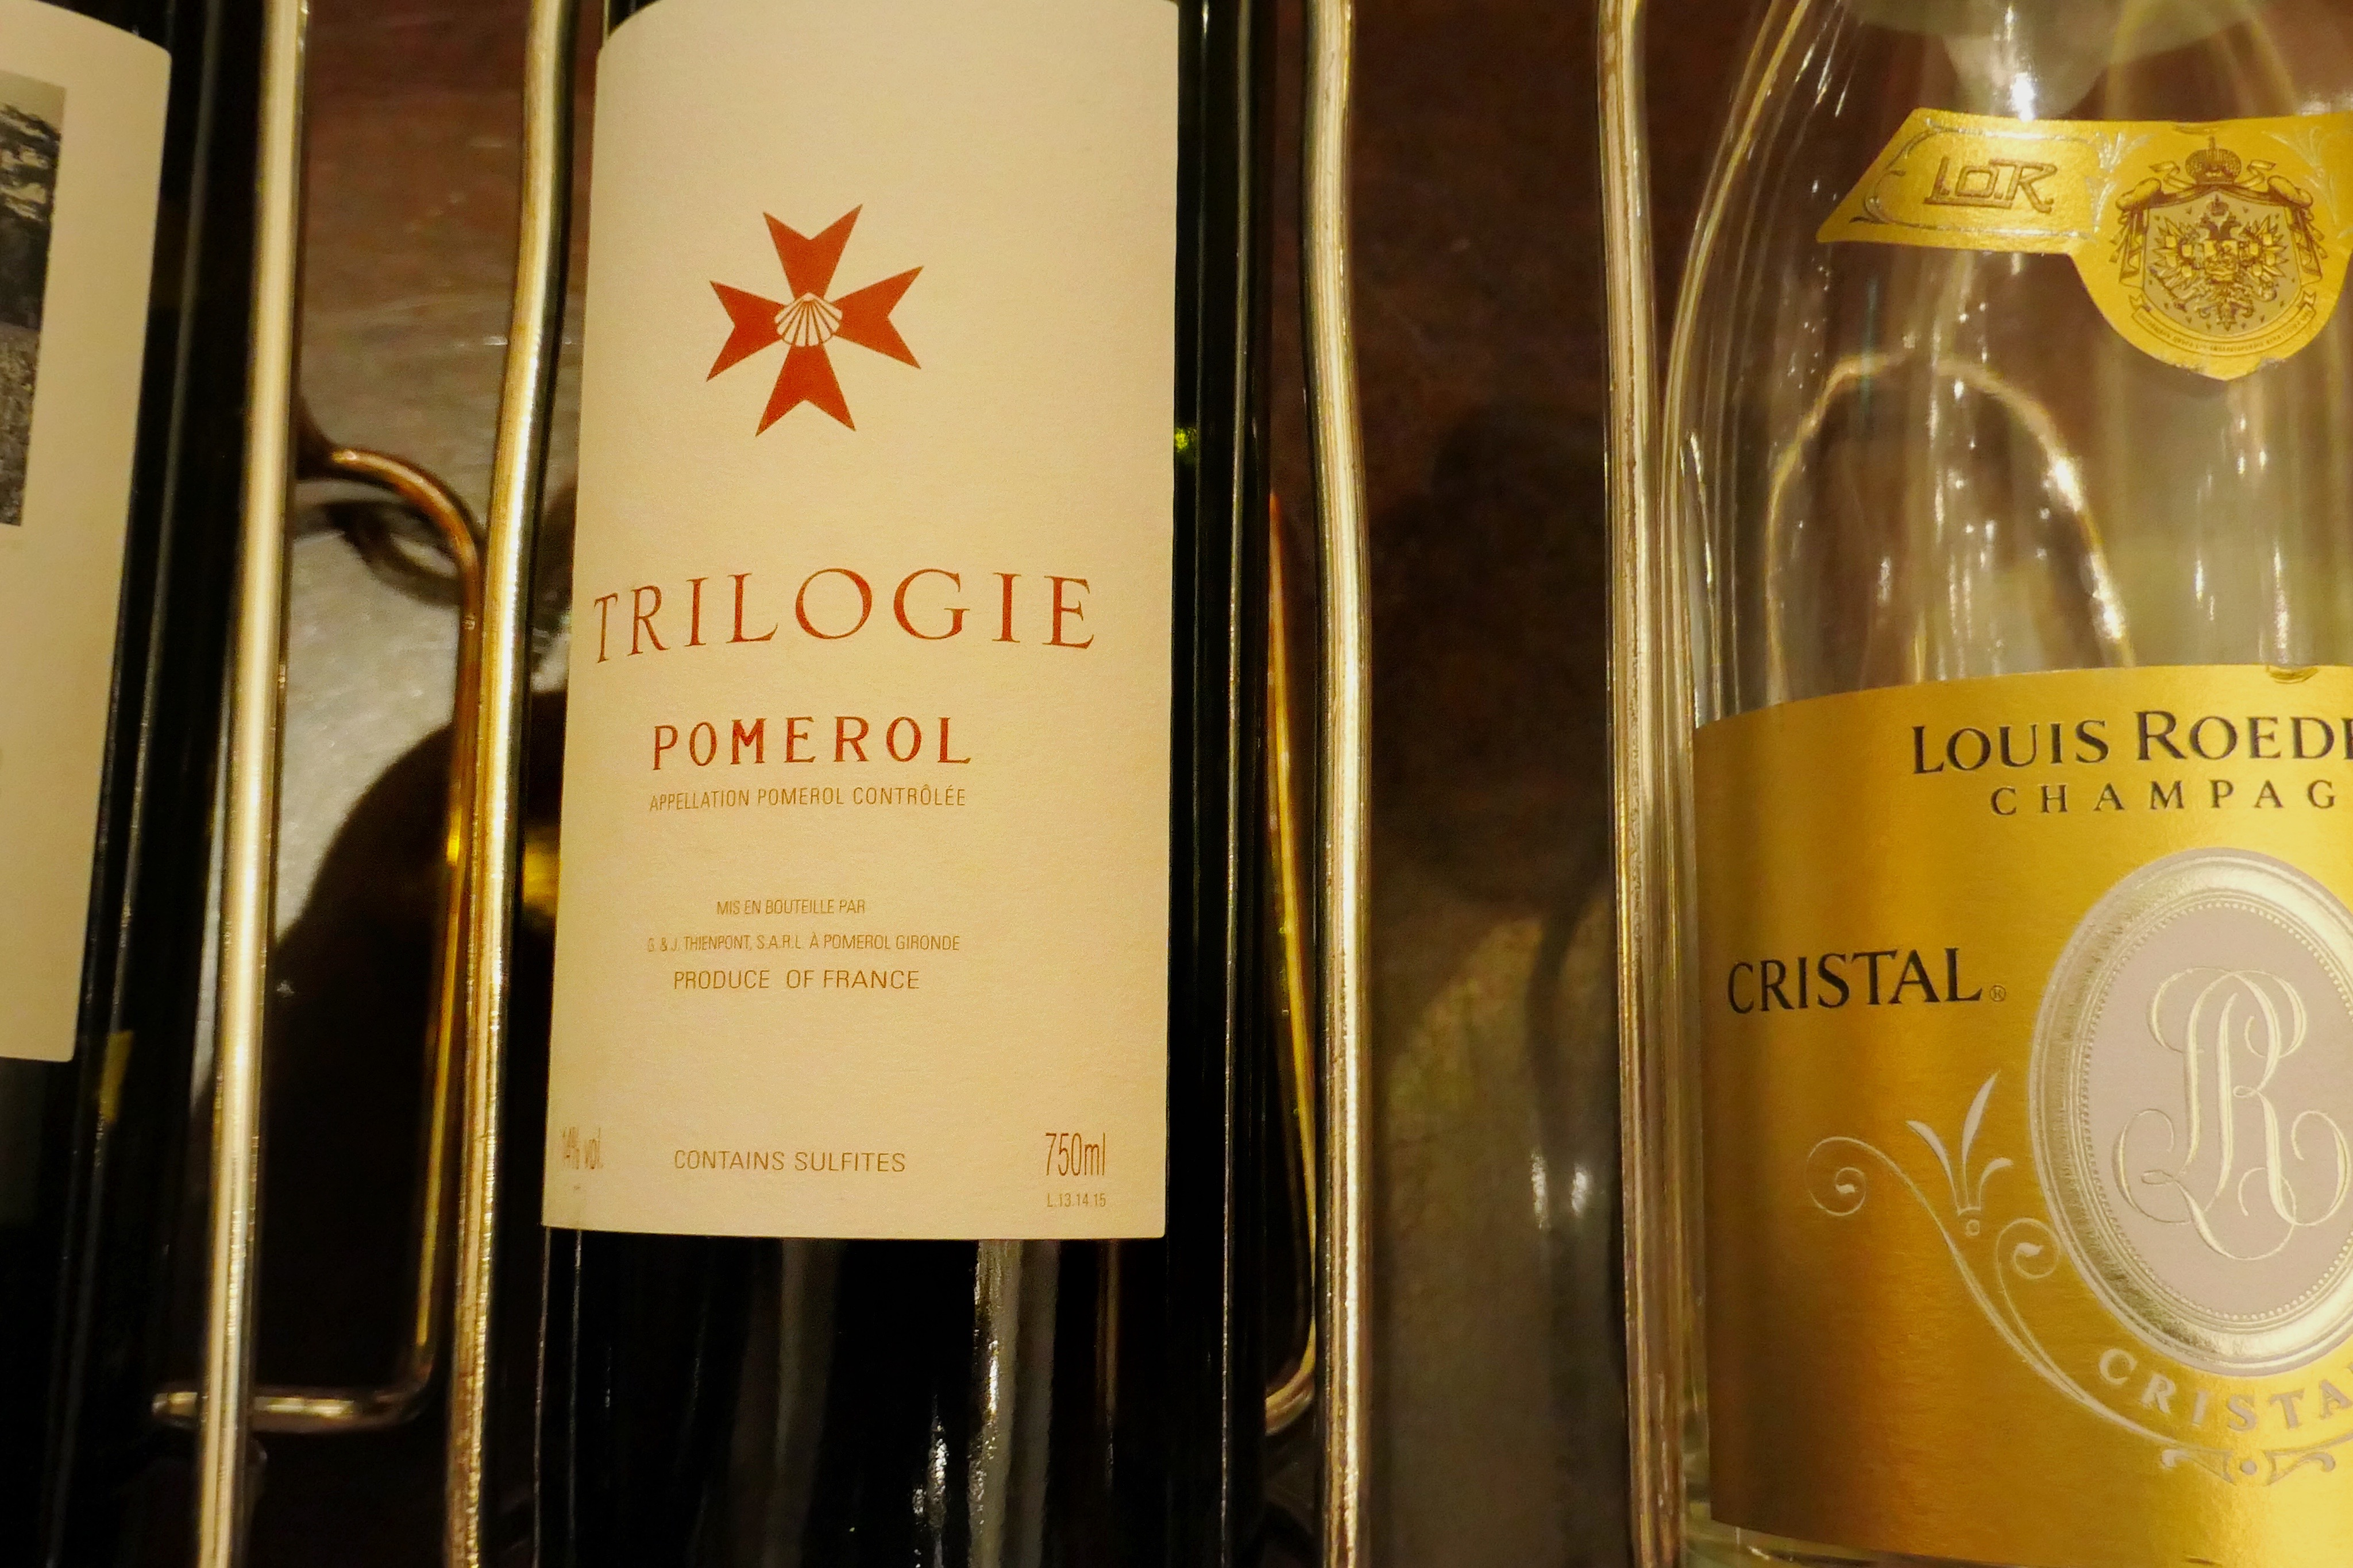 Trilogie is one of the top vintage-blend red wines in the world.  The other two are Vega Sicilia Reserva Especial Unico and ZD Abacus.